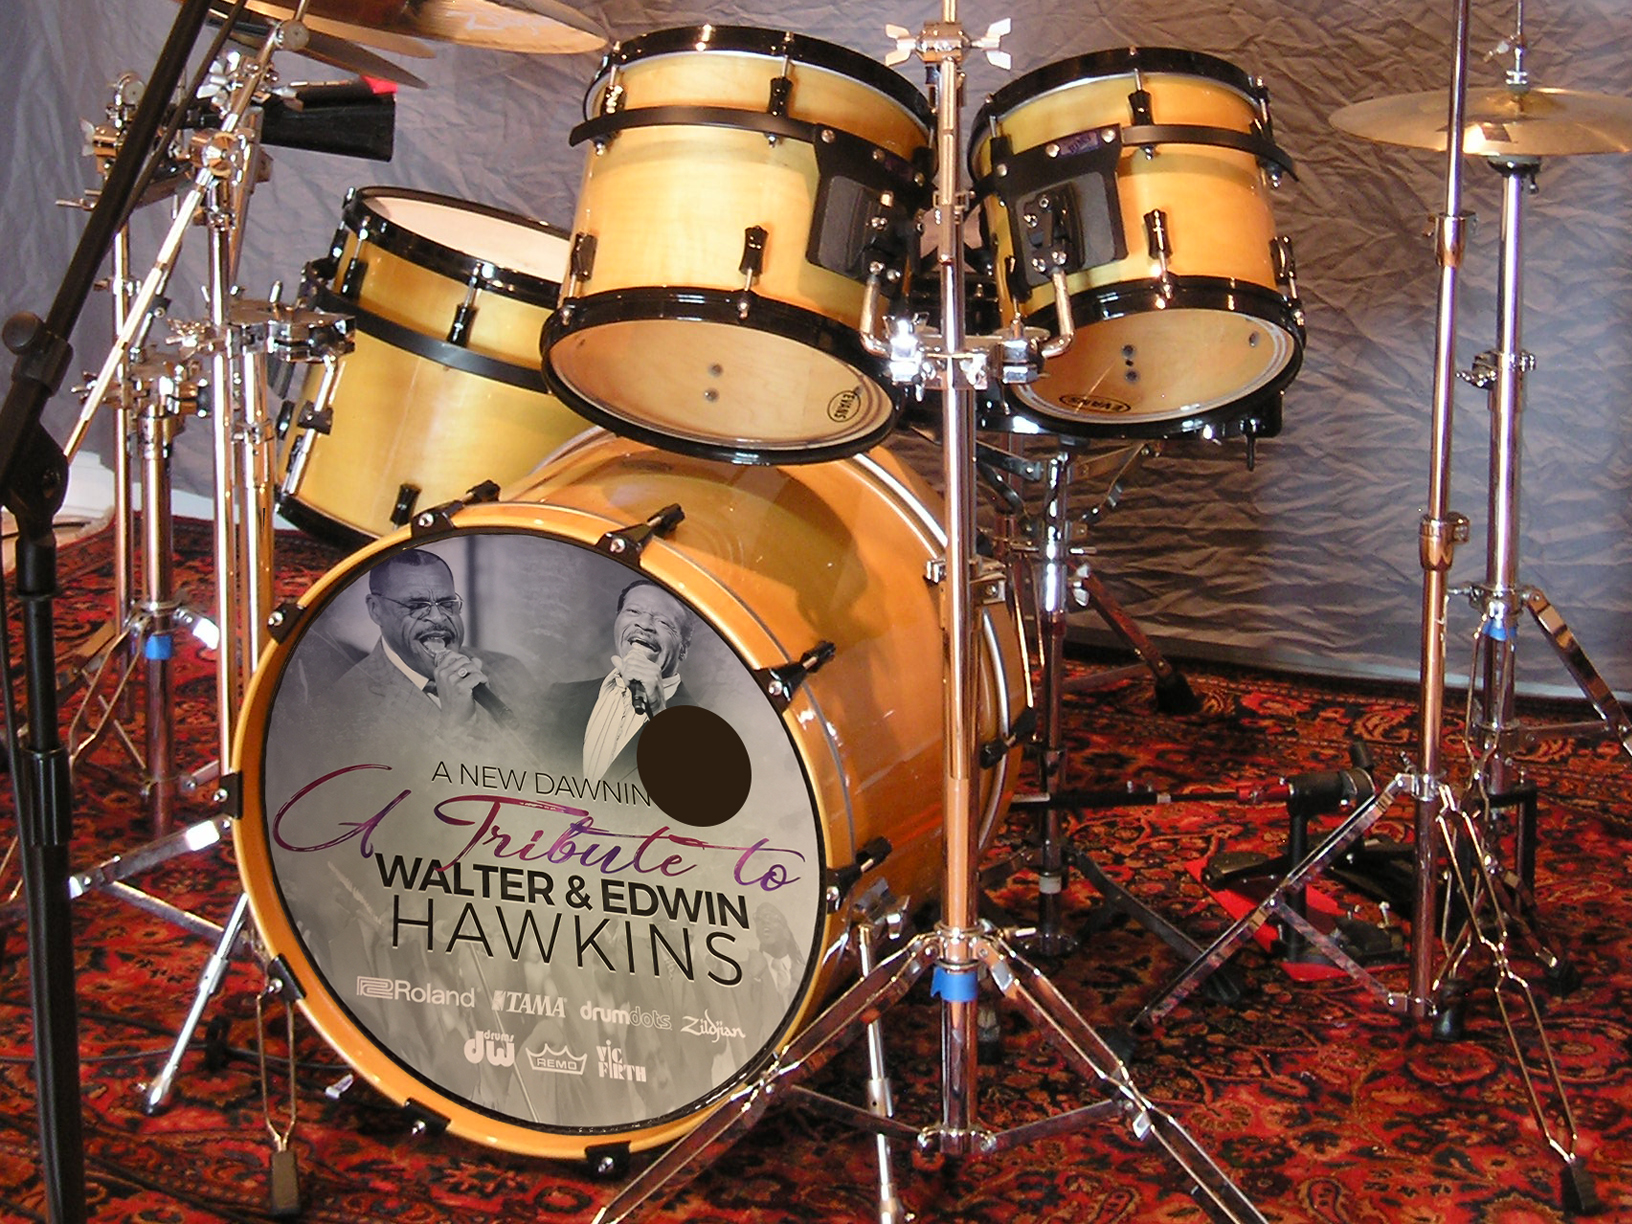 Tribute to Walter & Edwin Hawkins, removable drum decal, kick drum skin, full color drum decal, drum skin, sale, cheap price, die-cut, die cut vinyl decals, reusable static cling drum decal, music bands, local band